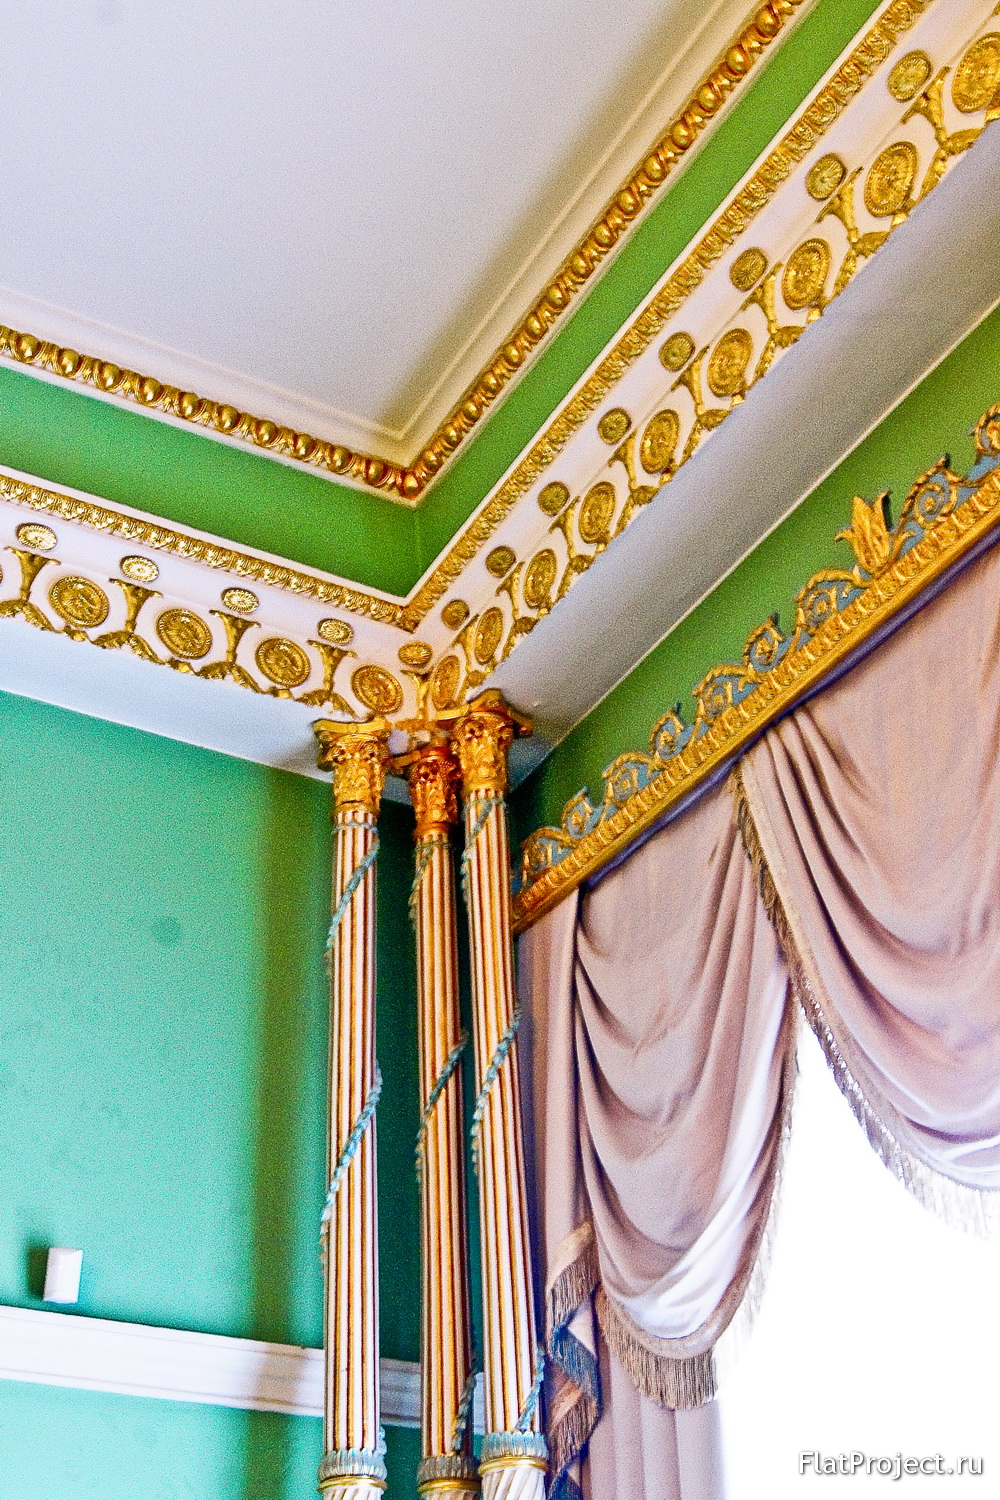 The Catherine Palace interiors – photo 41